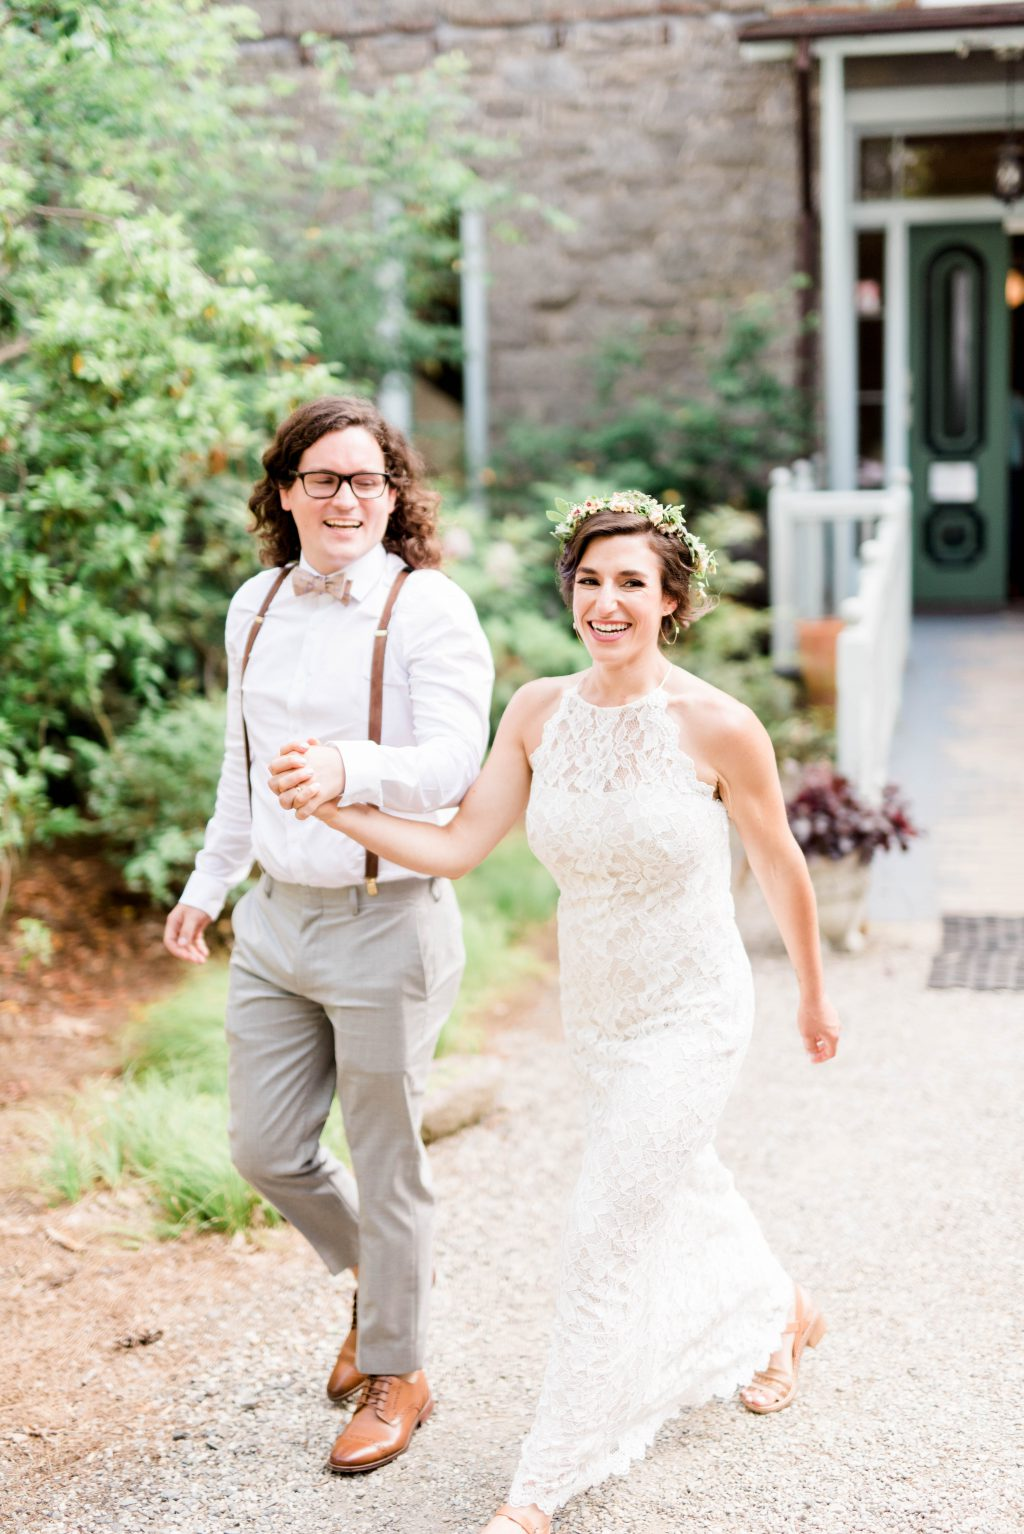 awbury-arboretum-wedding-DIY-boho-summer-haley-richter-photography-158